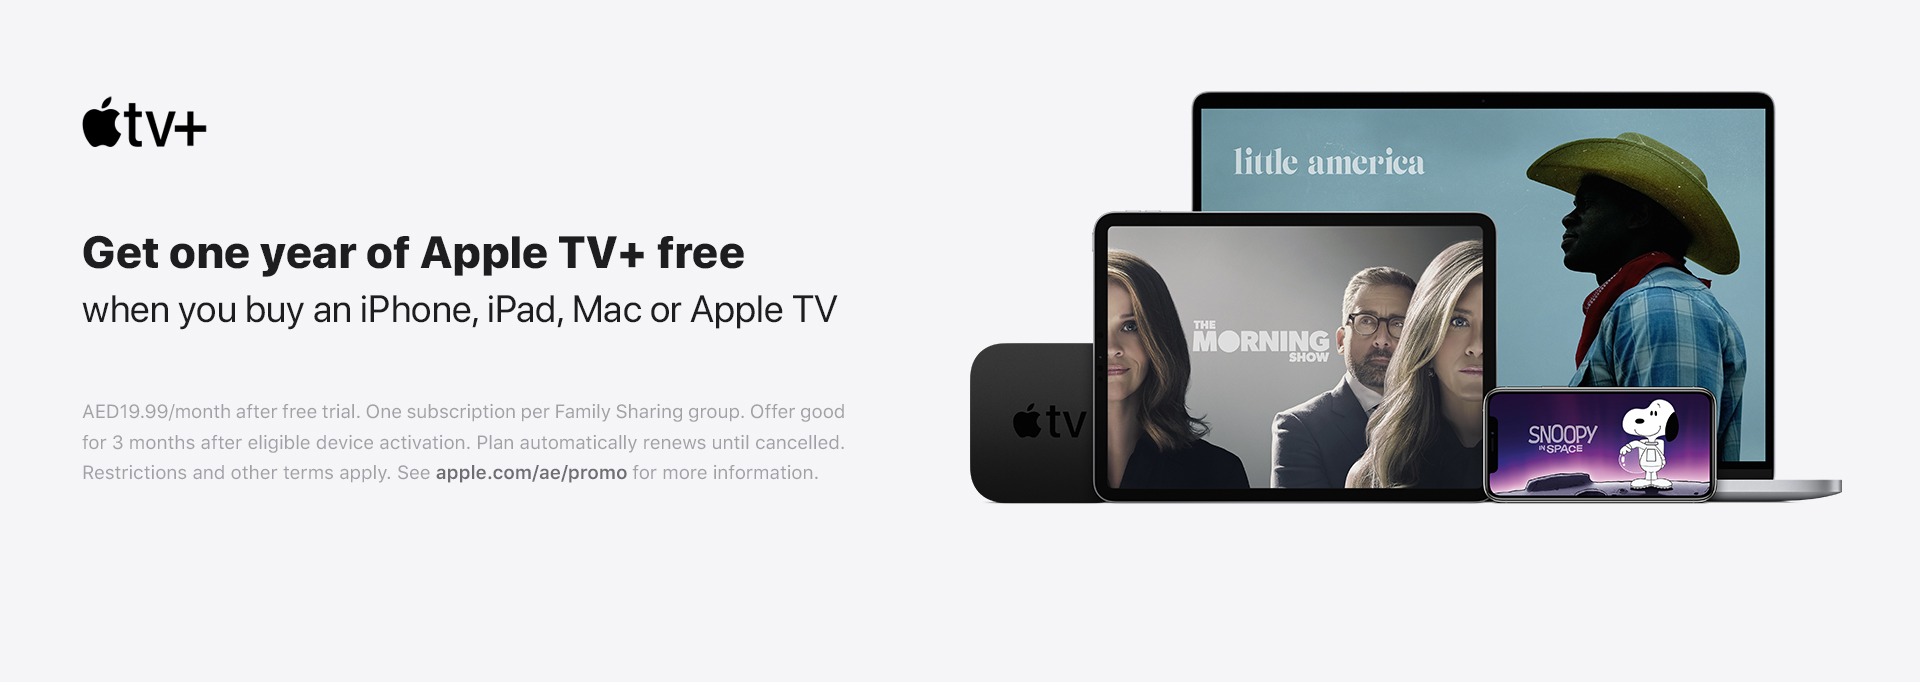 HP-Slider-AppleTV-promo_desktop.jpg